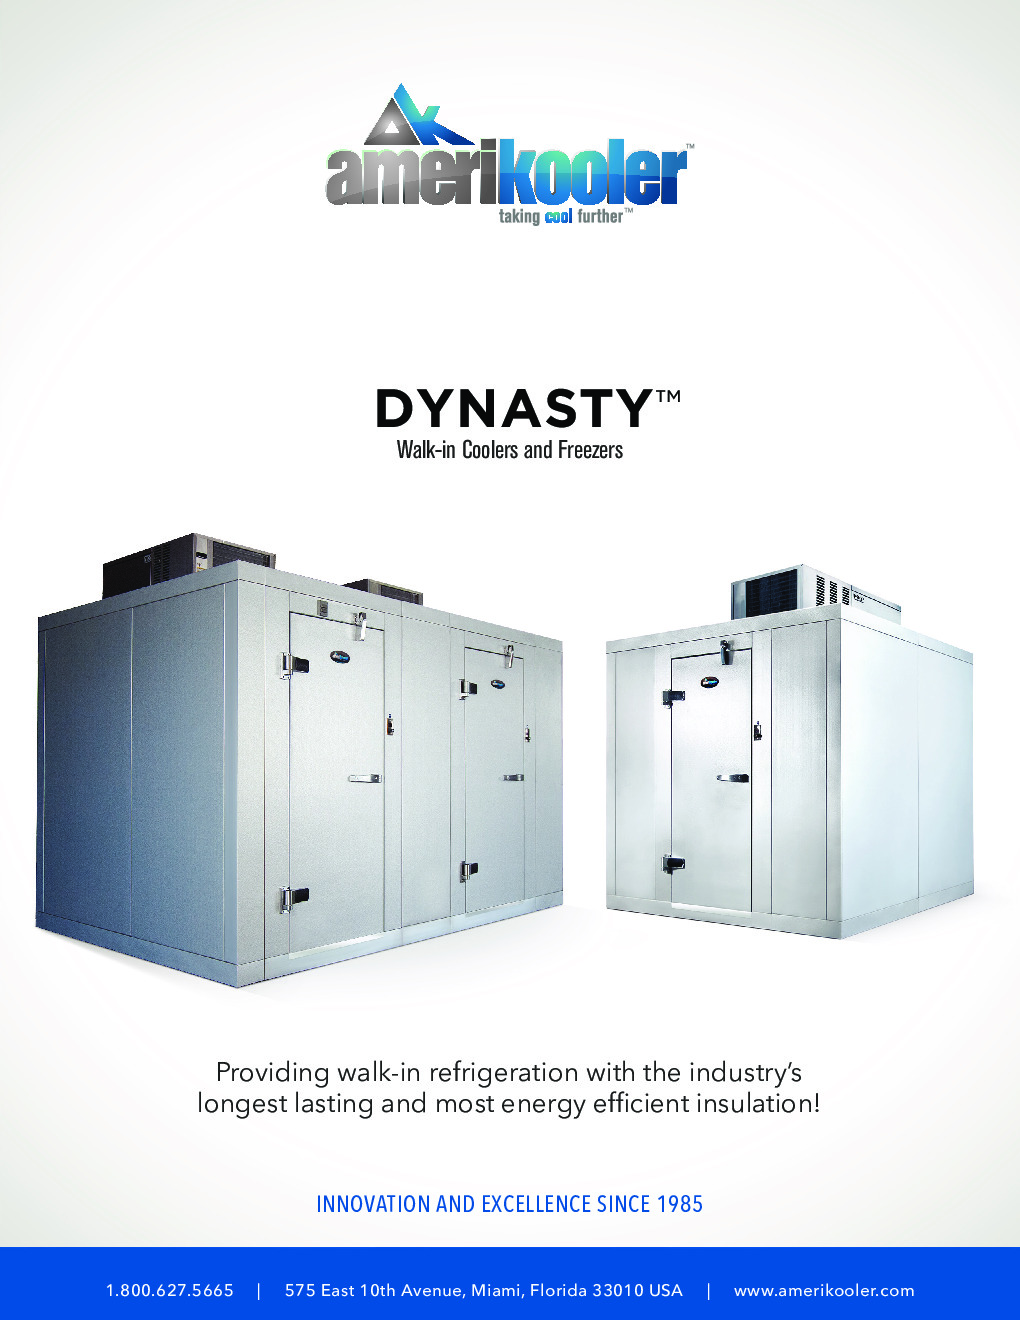 AmeriKooler DW081577F-4/11-RM 8' X 15' Walk-In Cooler, 11' L Cooler with Floor and 4' L Freezer, Remote